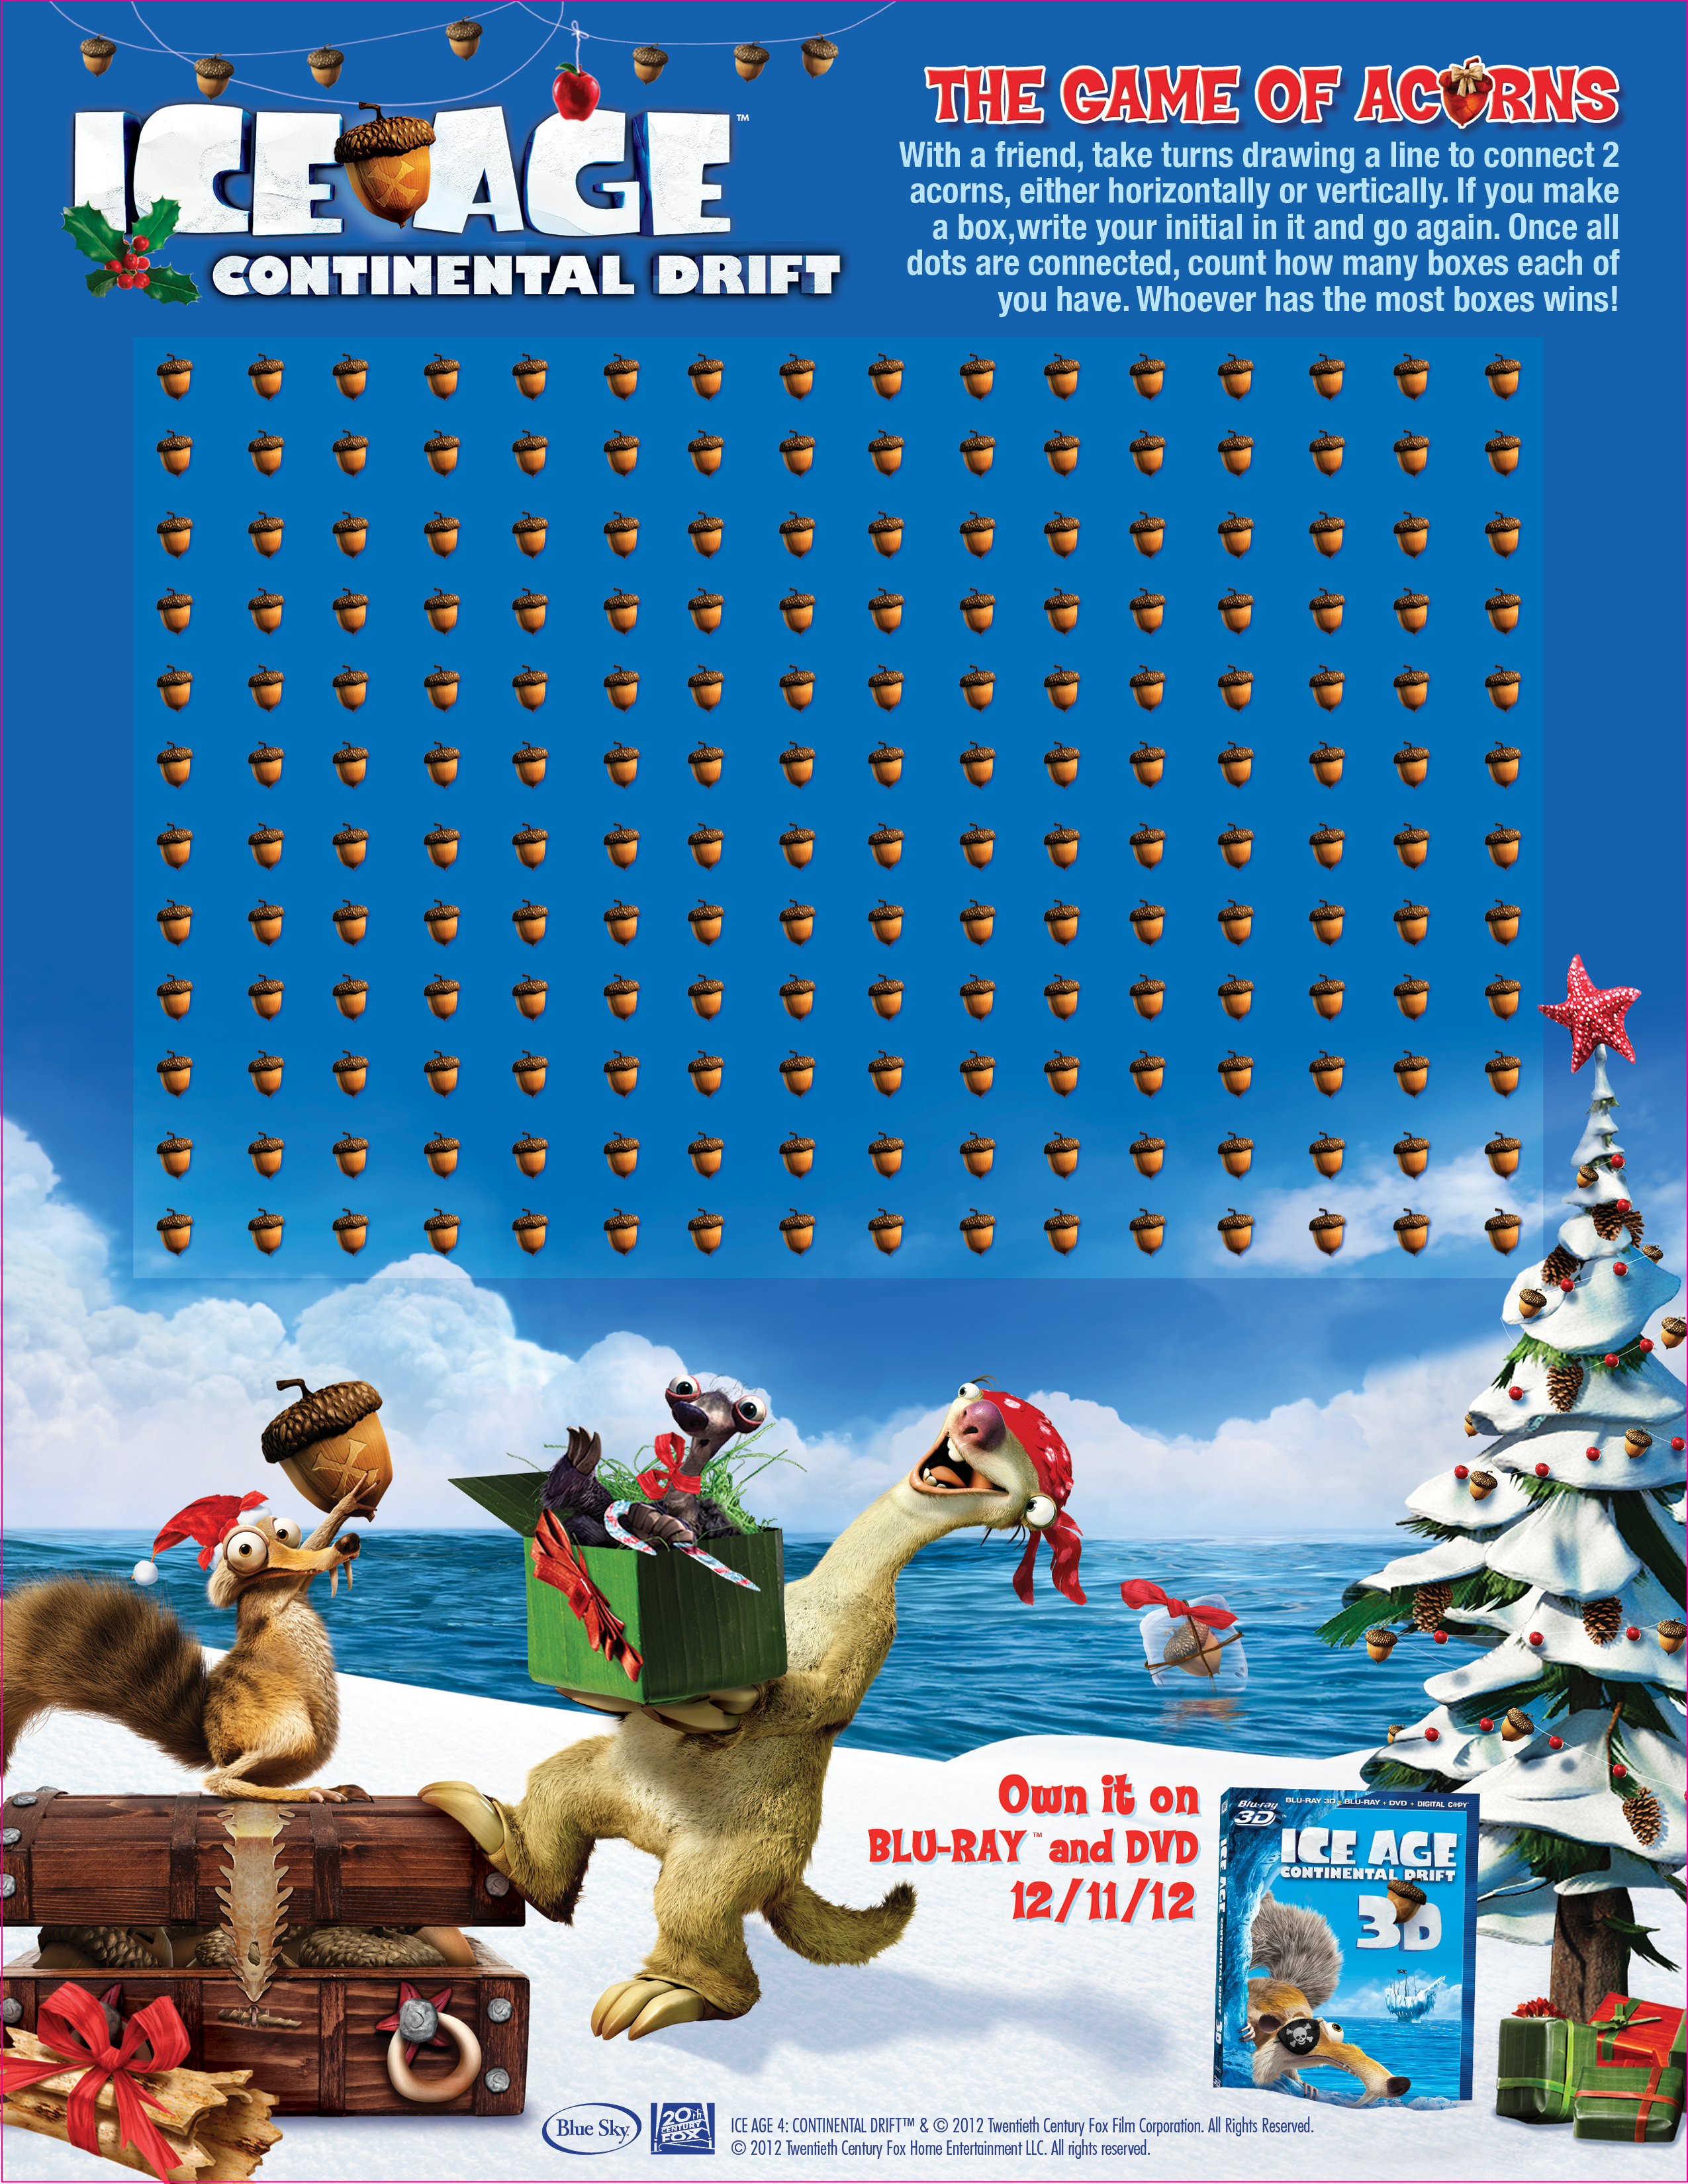 Ice Age Continental Drift Holiday Party